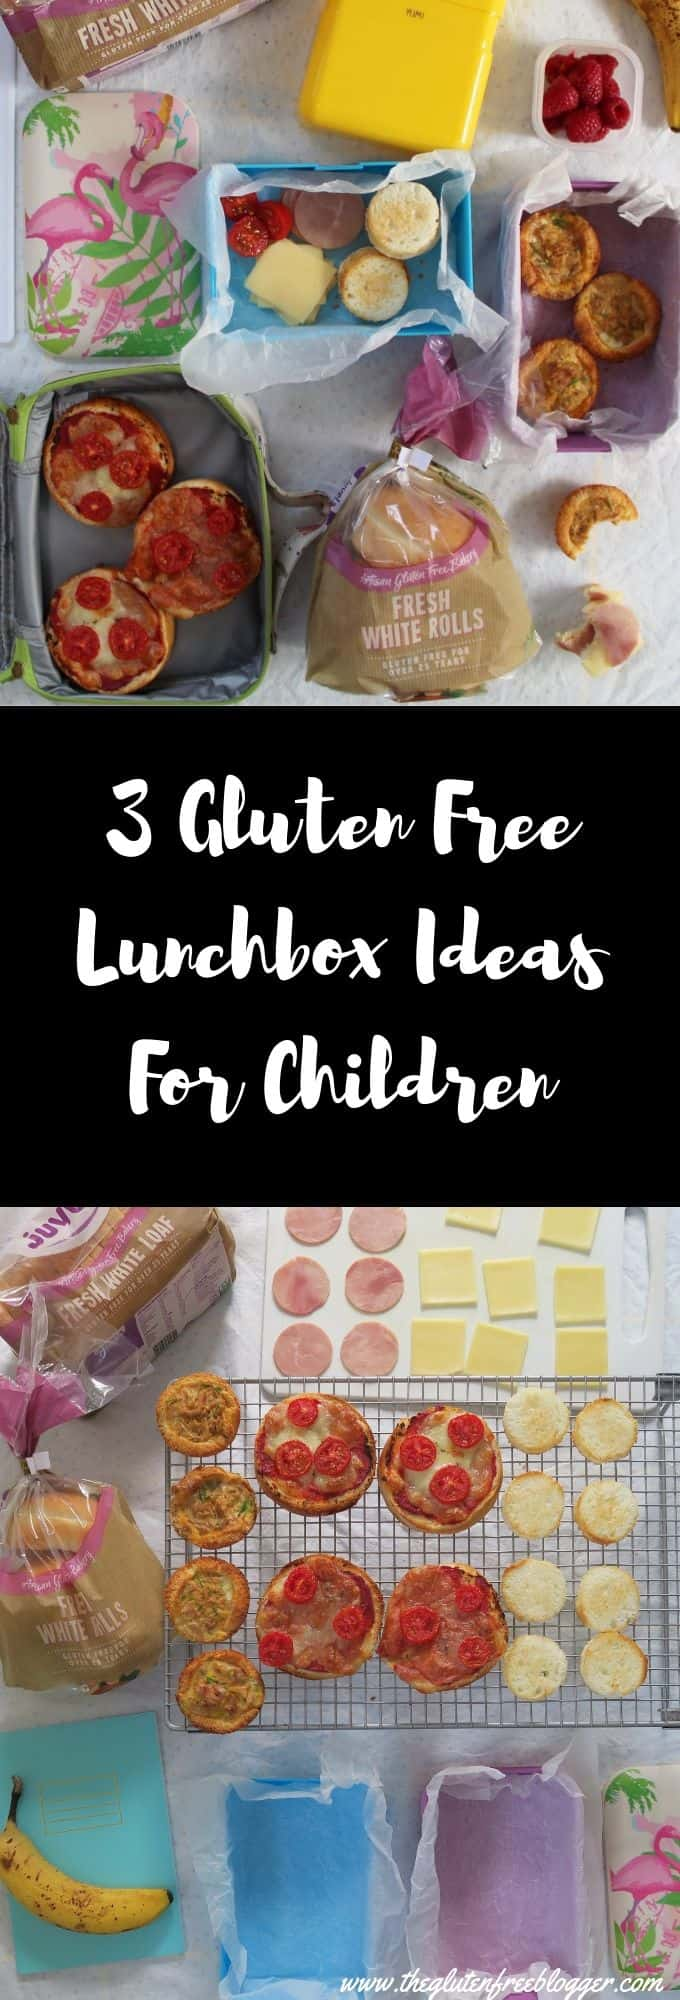 gluten free lunchbox ideas - gluten free children, coeliac children, lunch ideas for kids